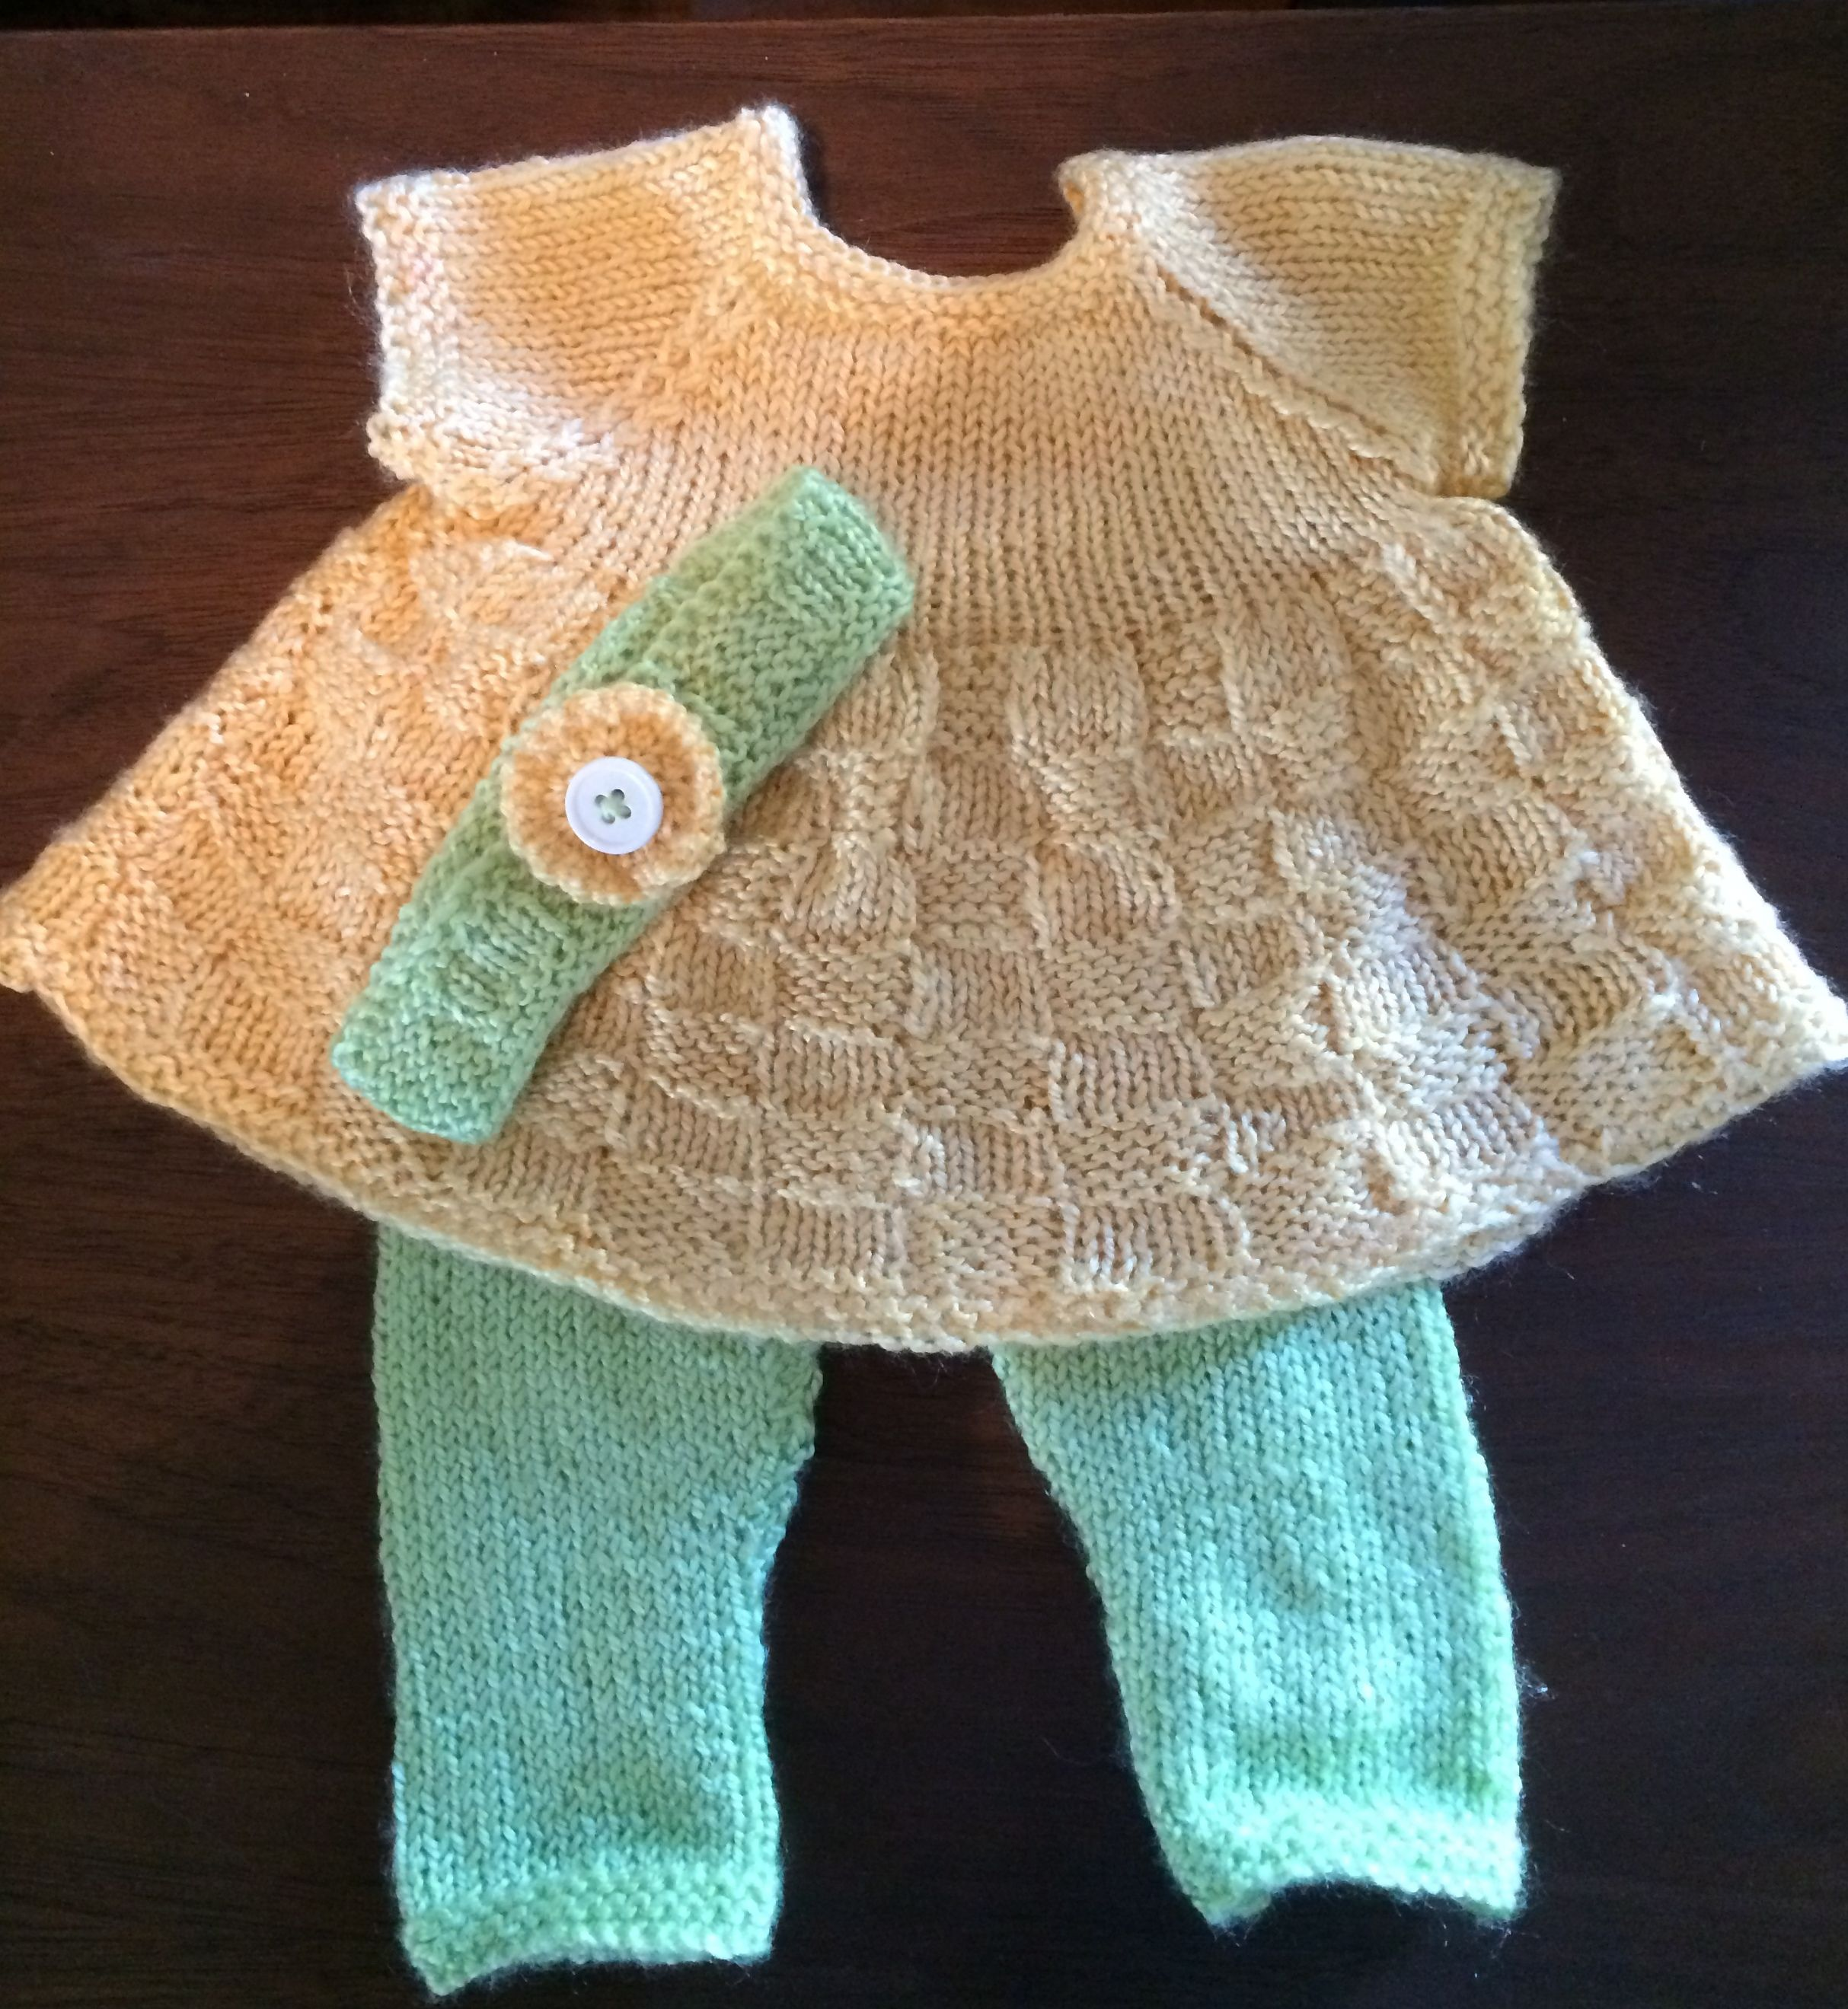 "Easter design for 14"" baby doll. Easy to knit, back fastening. Dress is done in one piece from the bottom up using straight needles.  http://www.ravelry.com/patterns/library/basket-weave-dress-leggings-headband-for-14-doll"